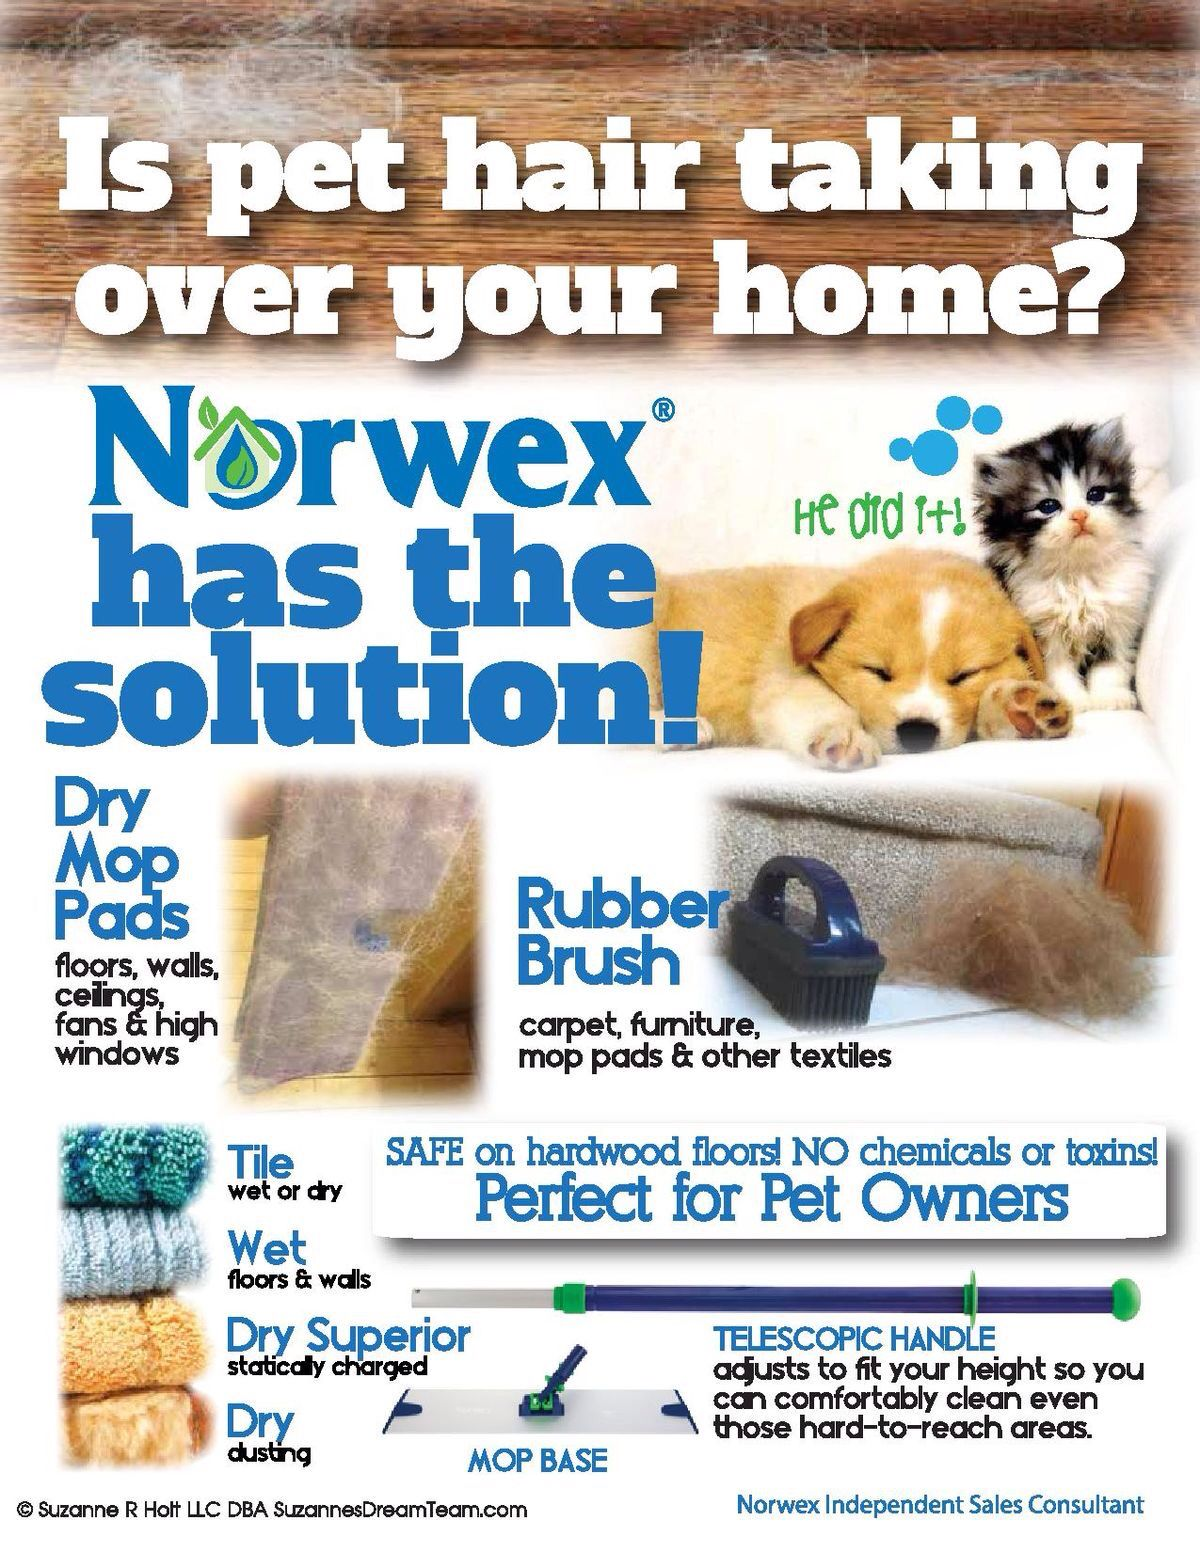 Great for pet hair control norwex mop www